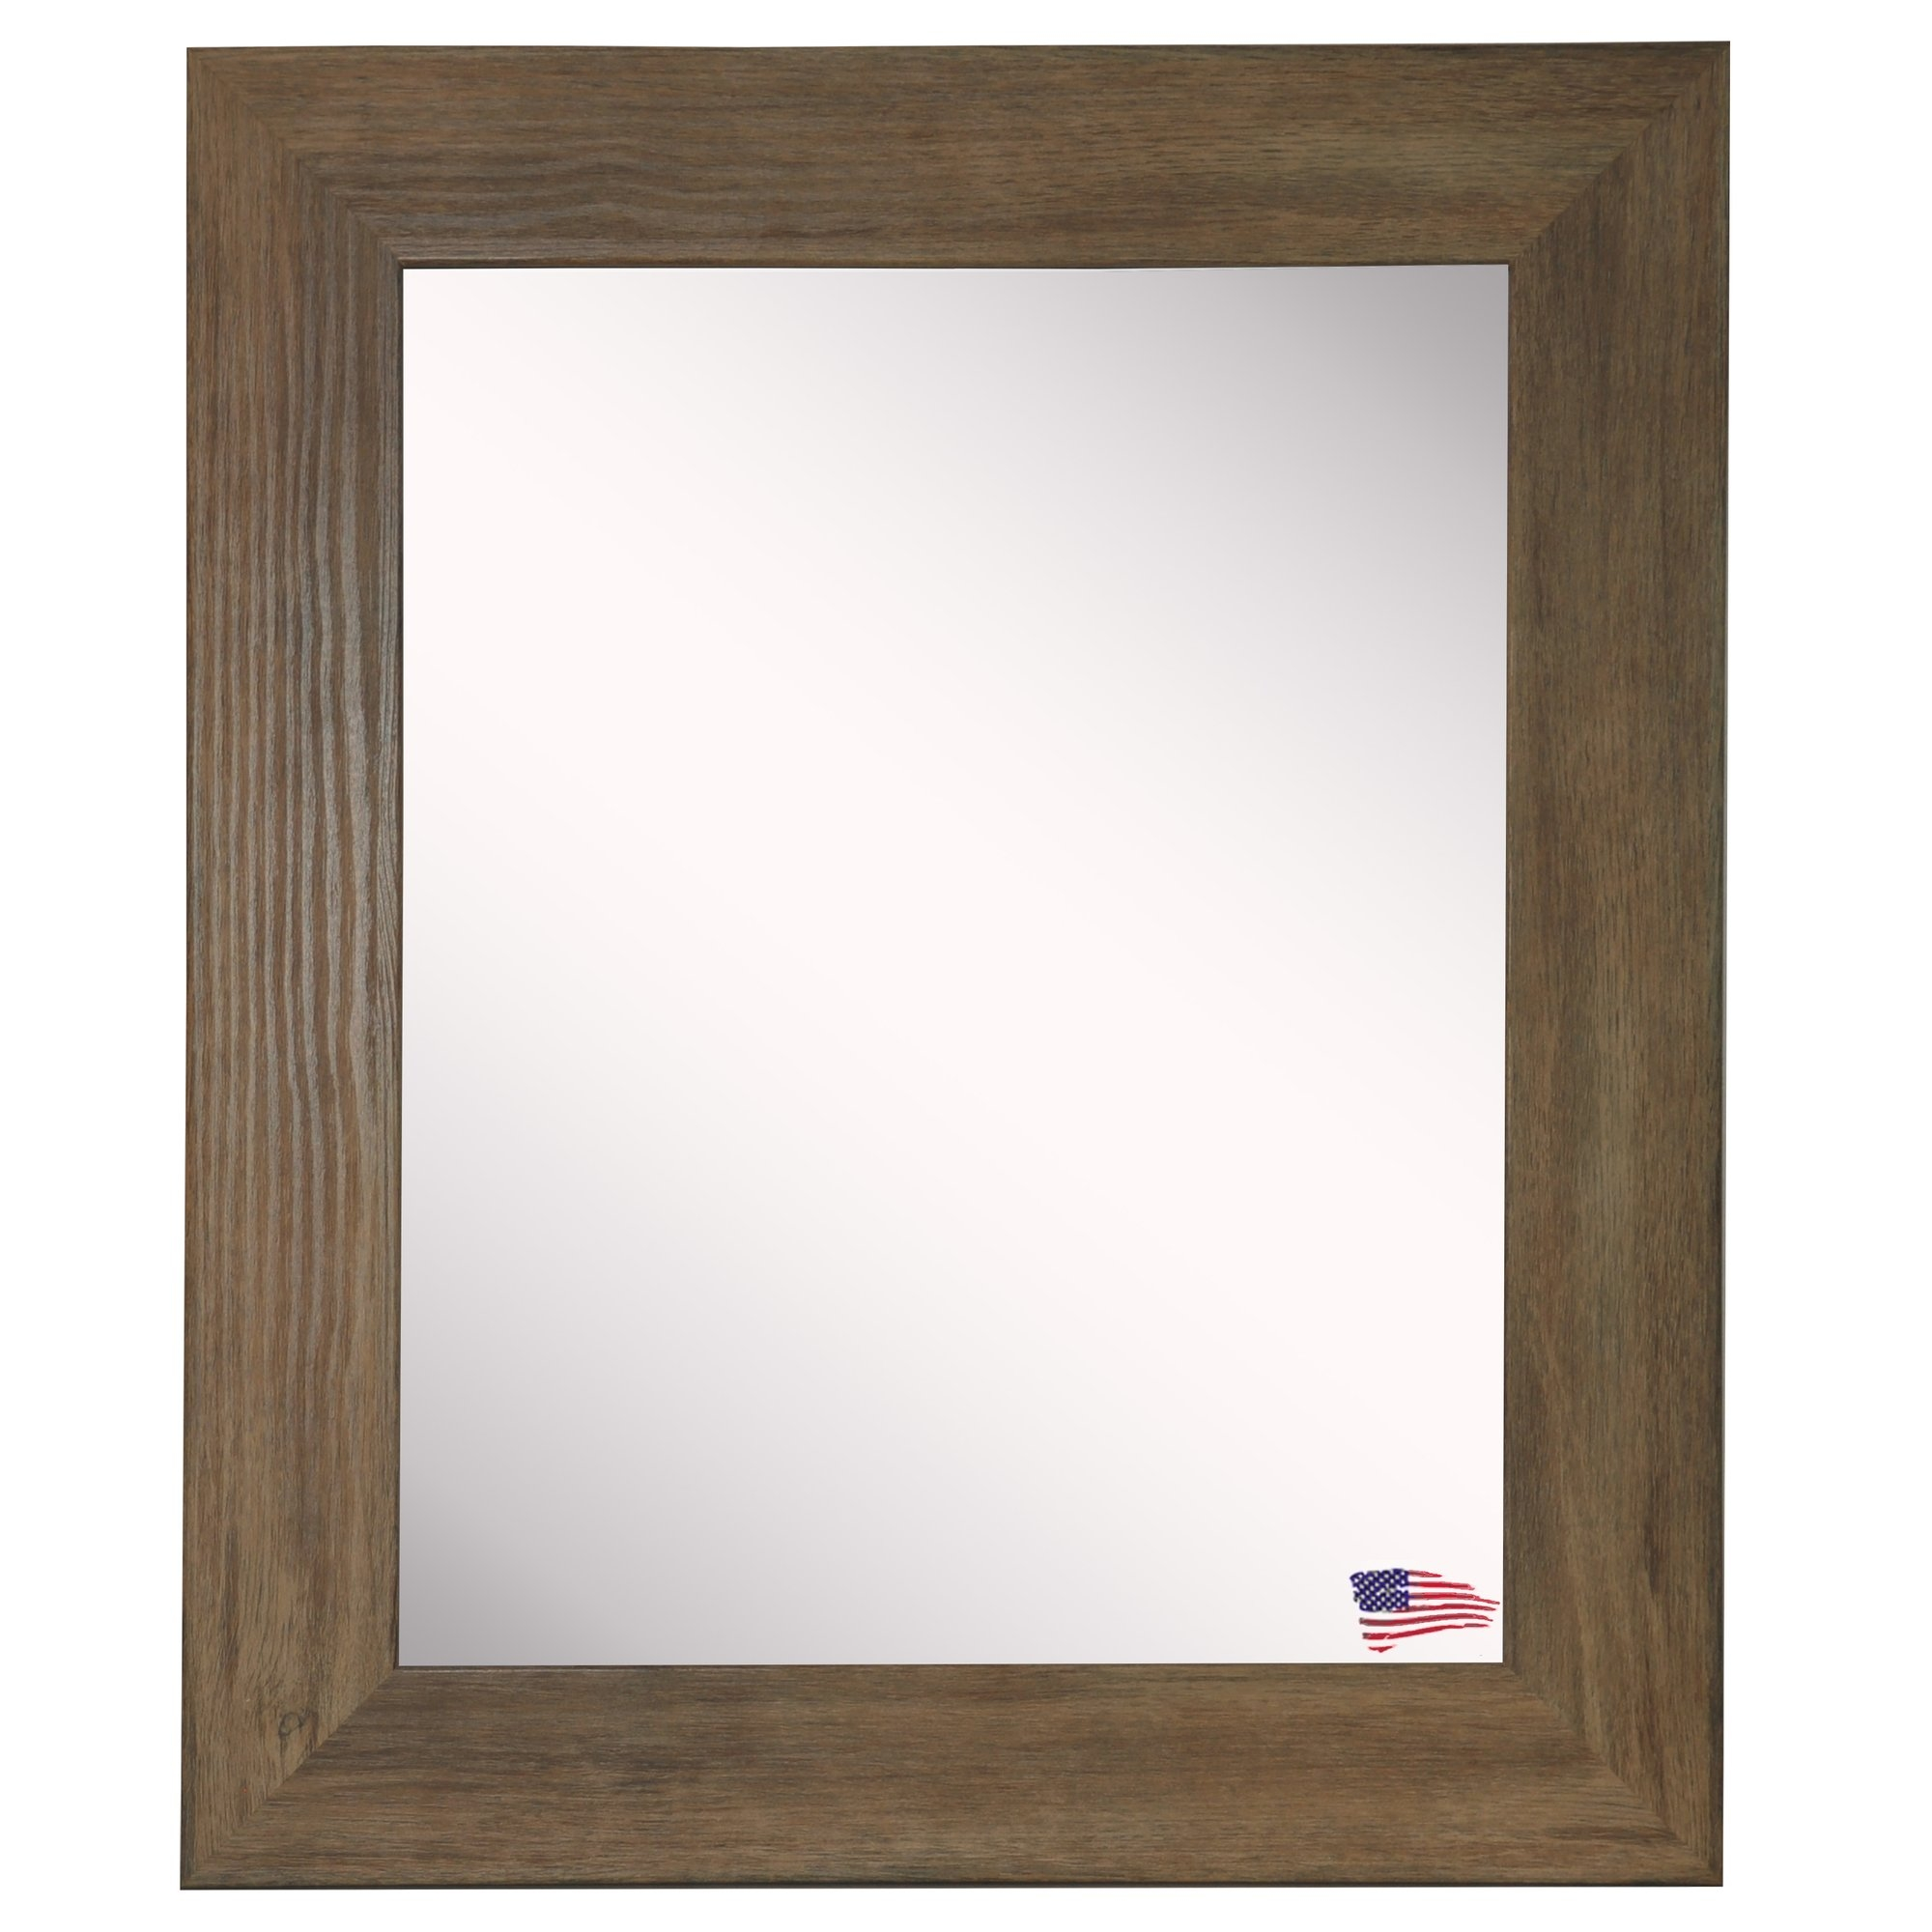 Laurel Foundry Modern Farmhouse Rectangle Brown Barnwood Wall Intended For Landscape Wall Mirror (View 14 of 15)